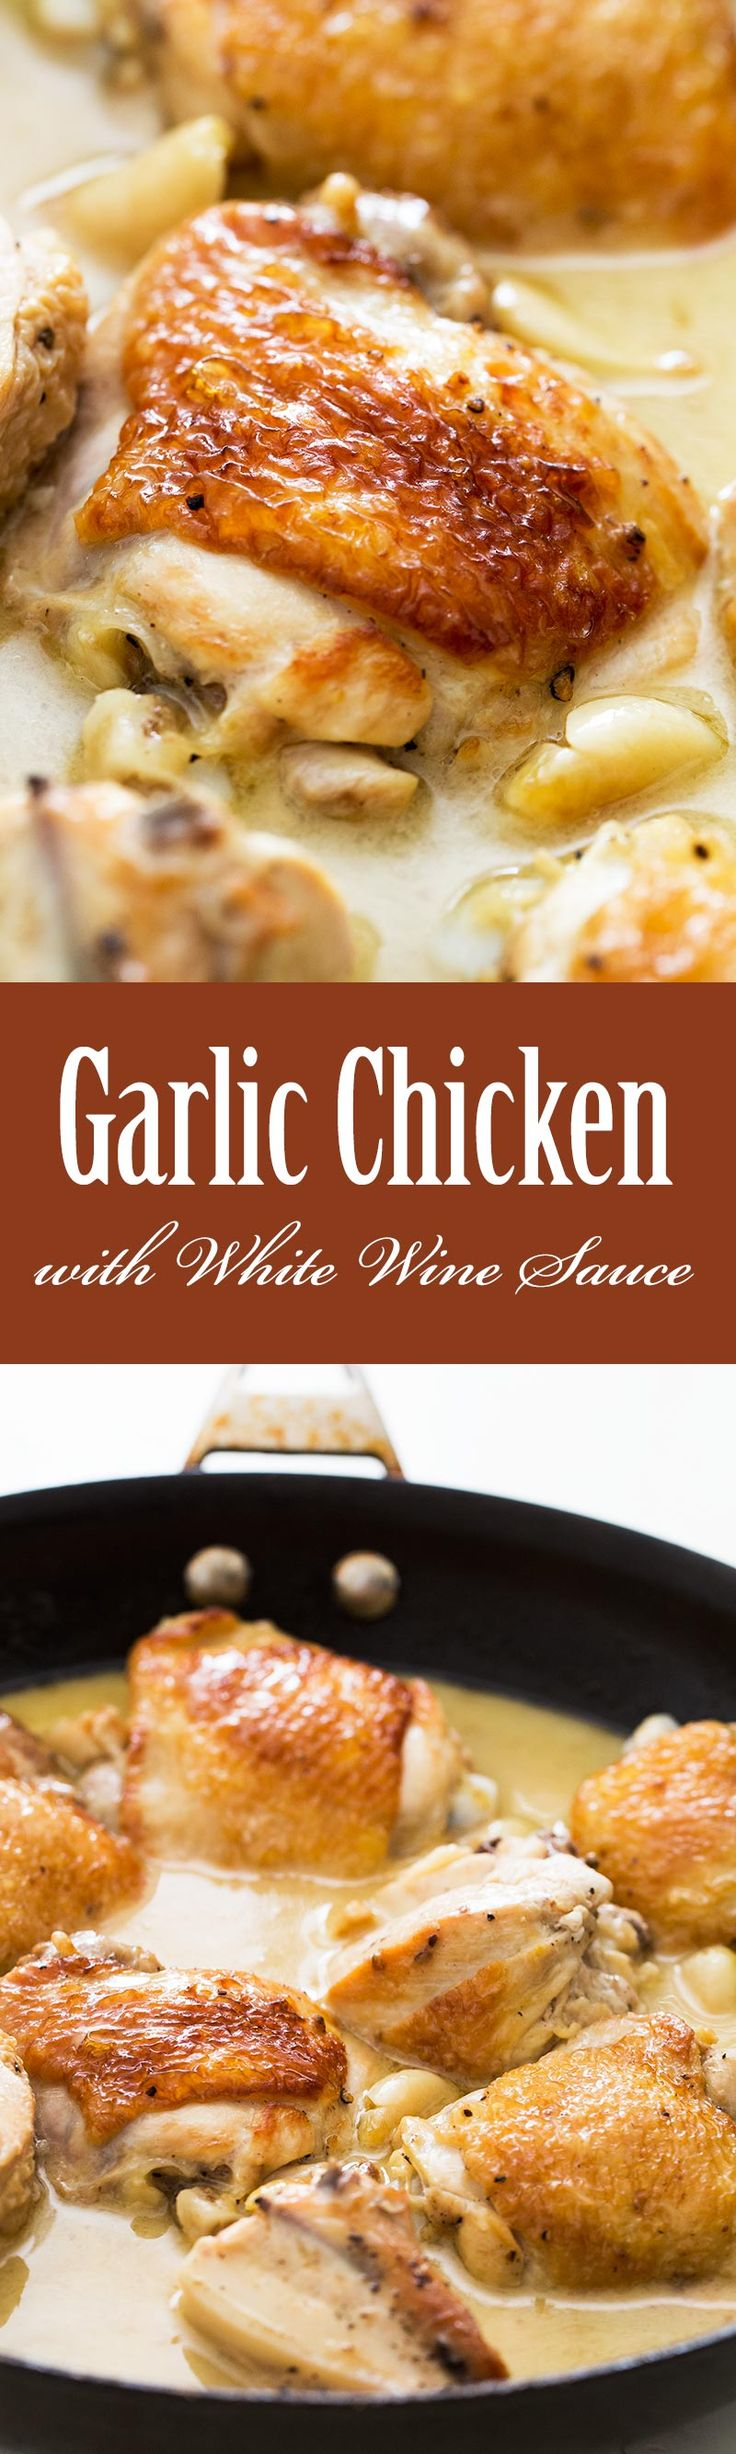 One Pan Stovetop 40 Clove Garlic Chicken! Chicken browned first in olive oil, then braised in white wine sauce with 40 cloves of garlic and thyme. On SimplyRecipes.com